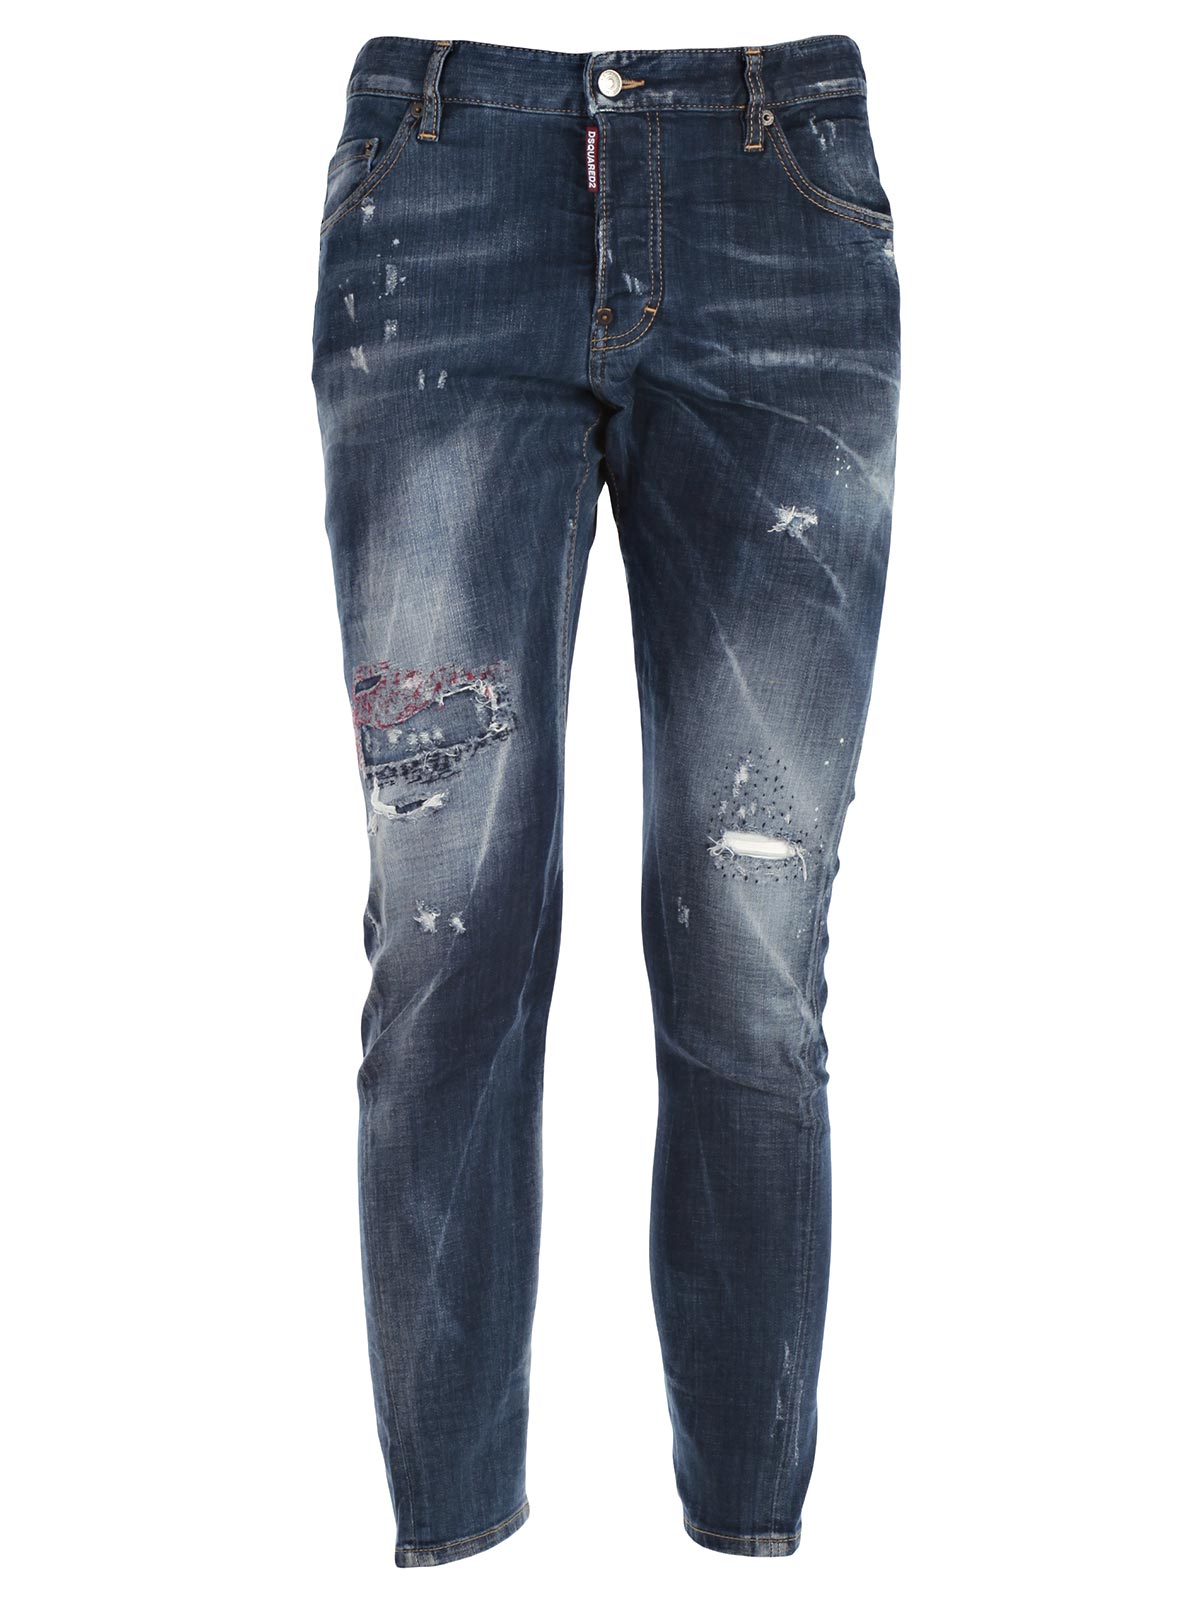 Picture of DSQUARED2 JEANS JEANS SEXY TWIST - GINOCCHIO PUNTINATO ROSSO